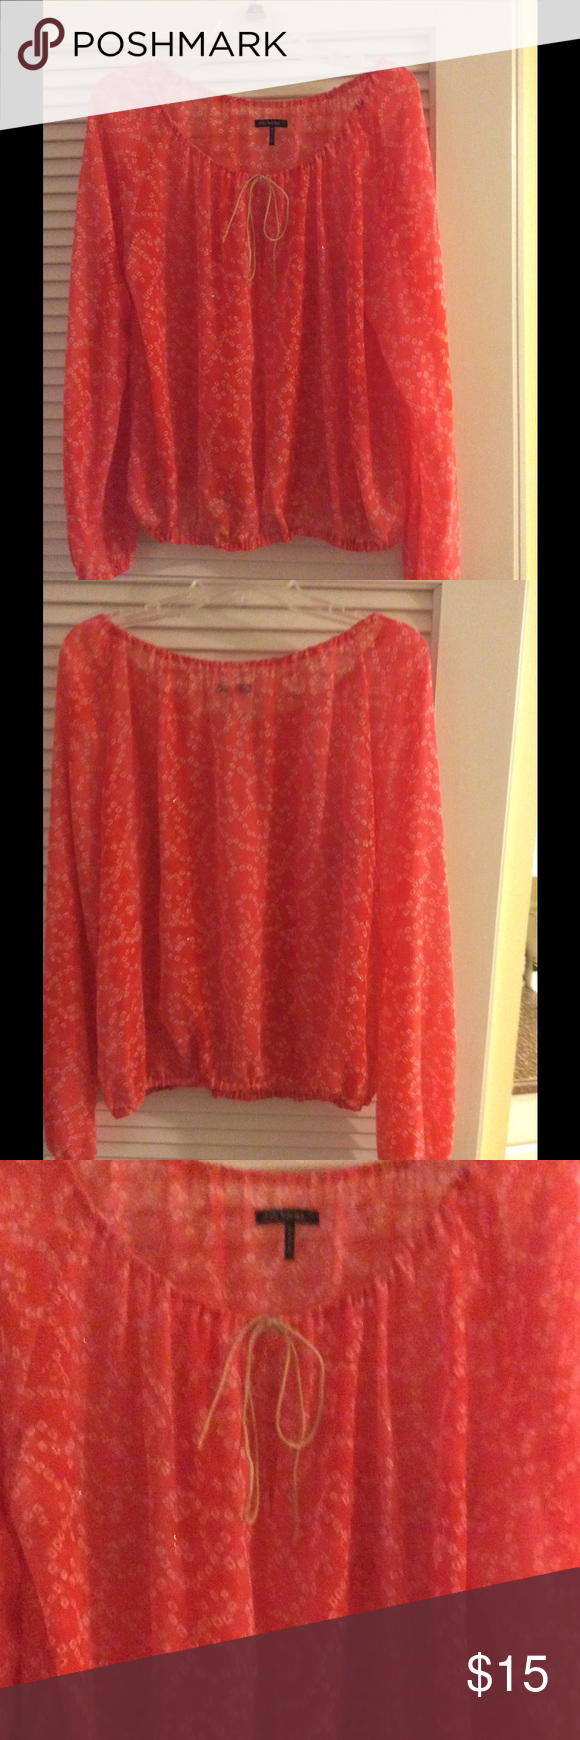 Shirt Coral color. Sheer gold flecked swirl  pattern. Worn lightly Great condition  elastic waist. Daisy Fuentes Tops Blouses